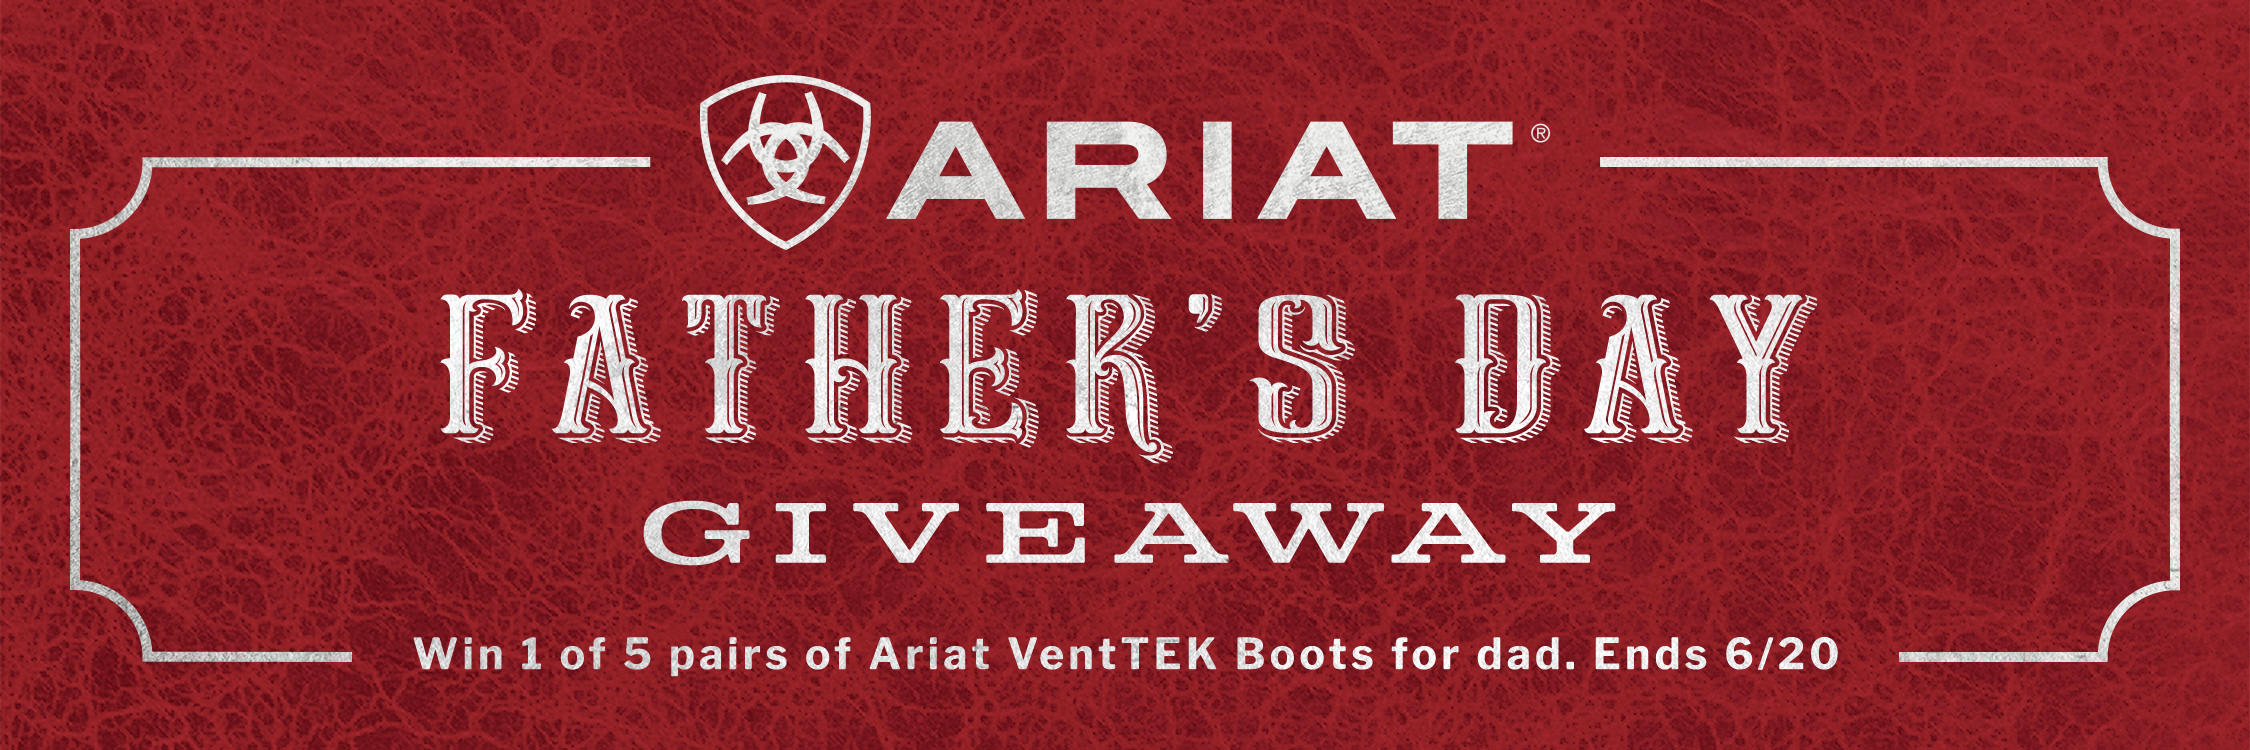 2021 Cavenders and Ariat Fathers Day Giveaway